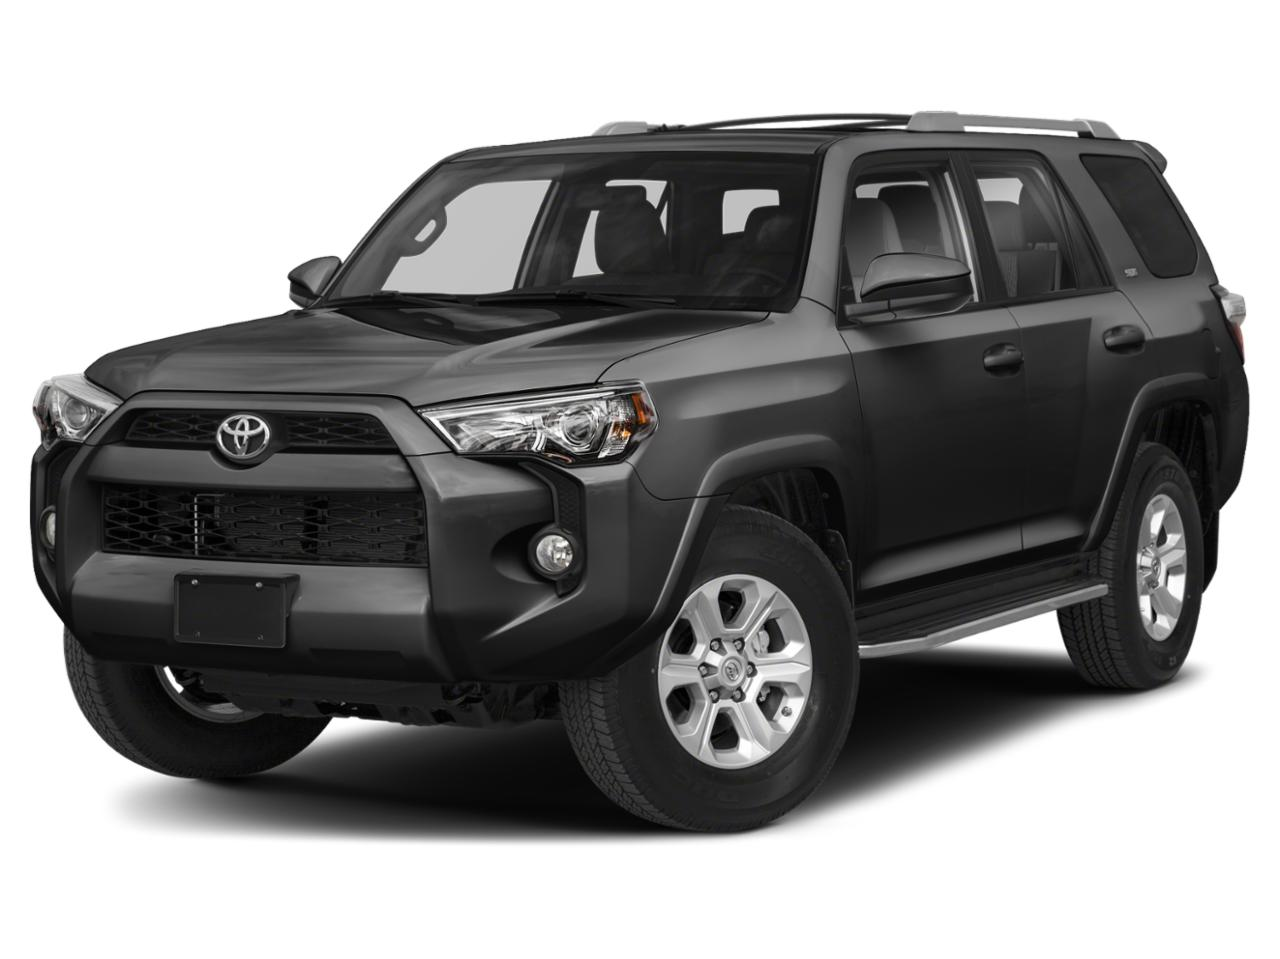 2019 Toyota 4Runner Vehicle Photo in OKLAHOMA CITY, OK 73131